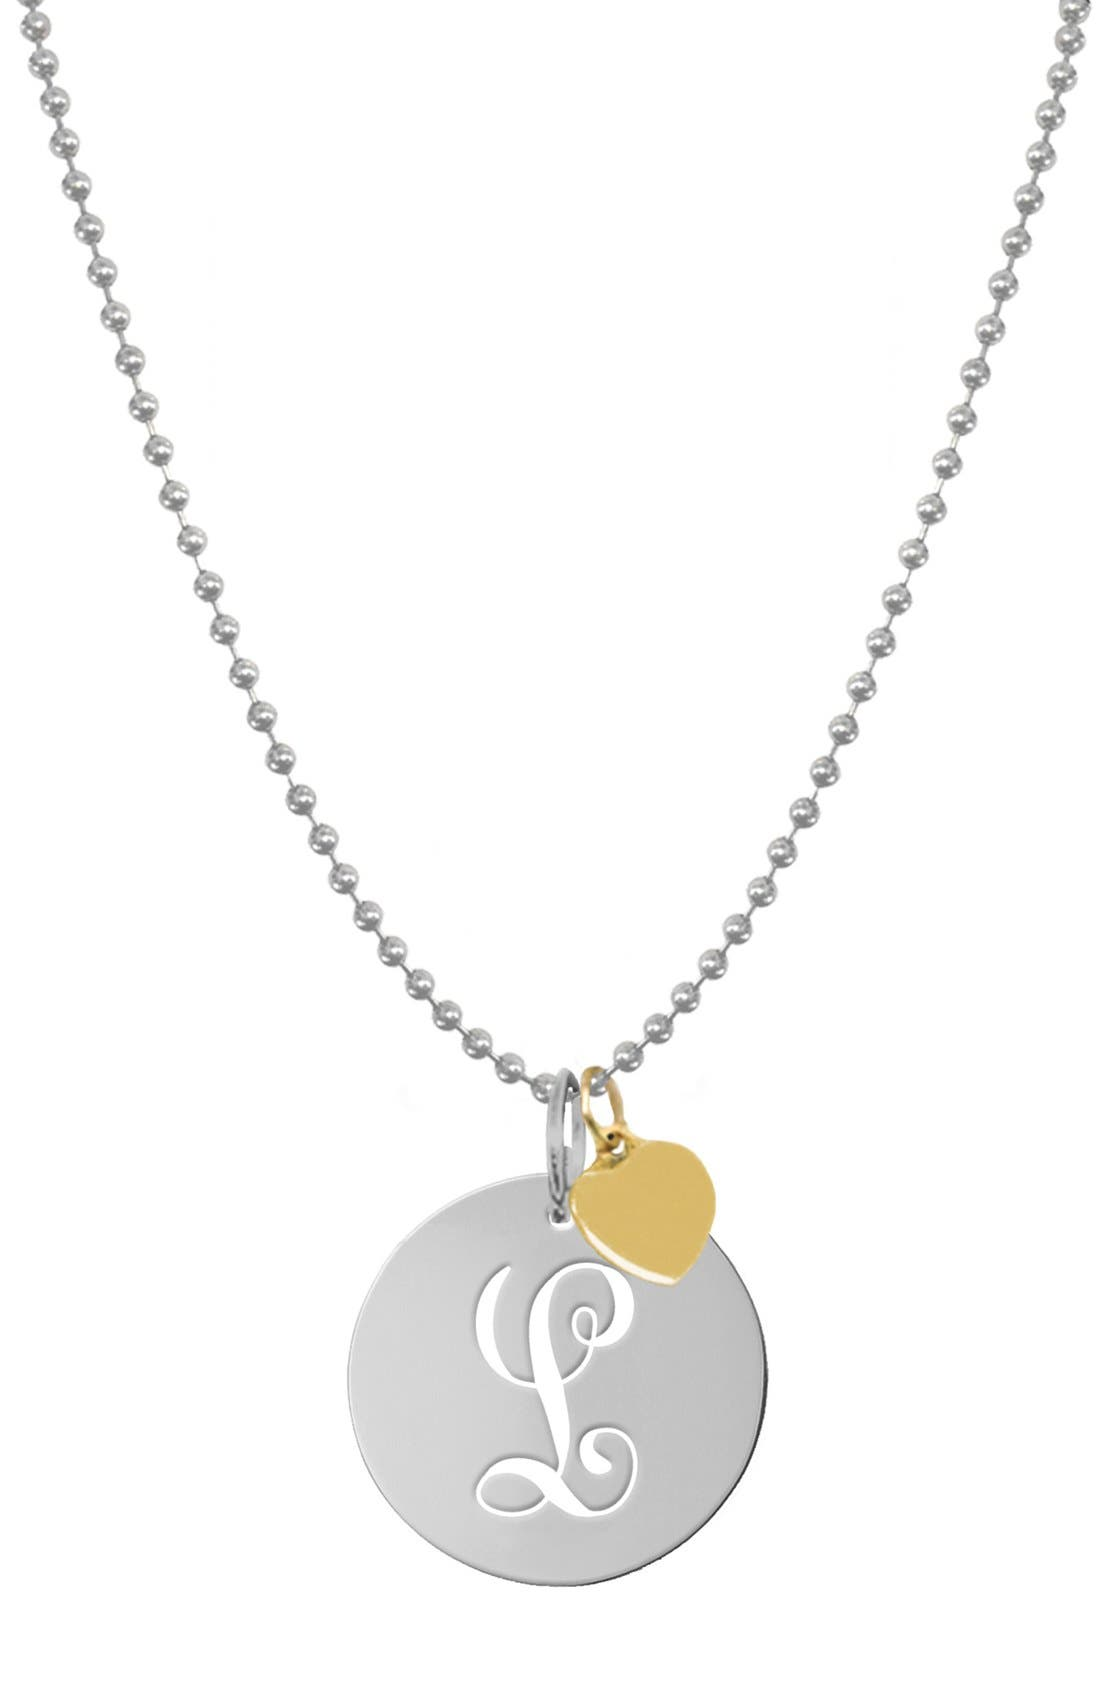 Alternate Image 1 Selected - Jane Basch Designs Personalized Script Initial Disc Pendant Necklace